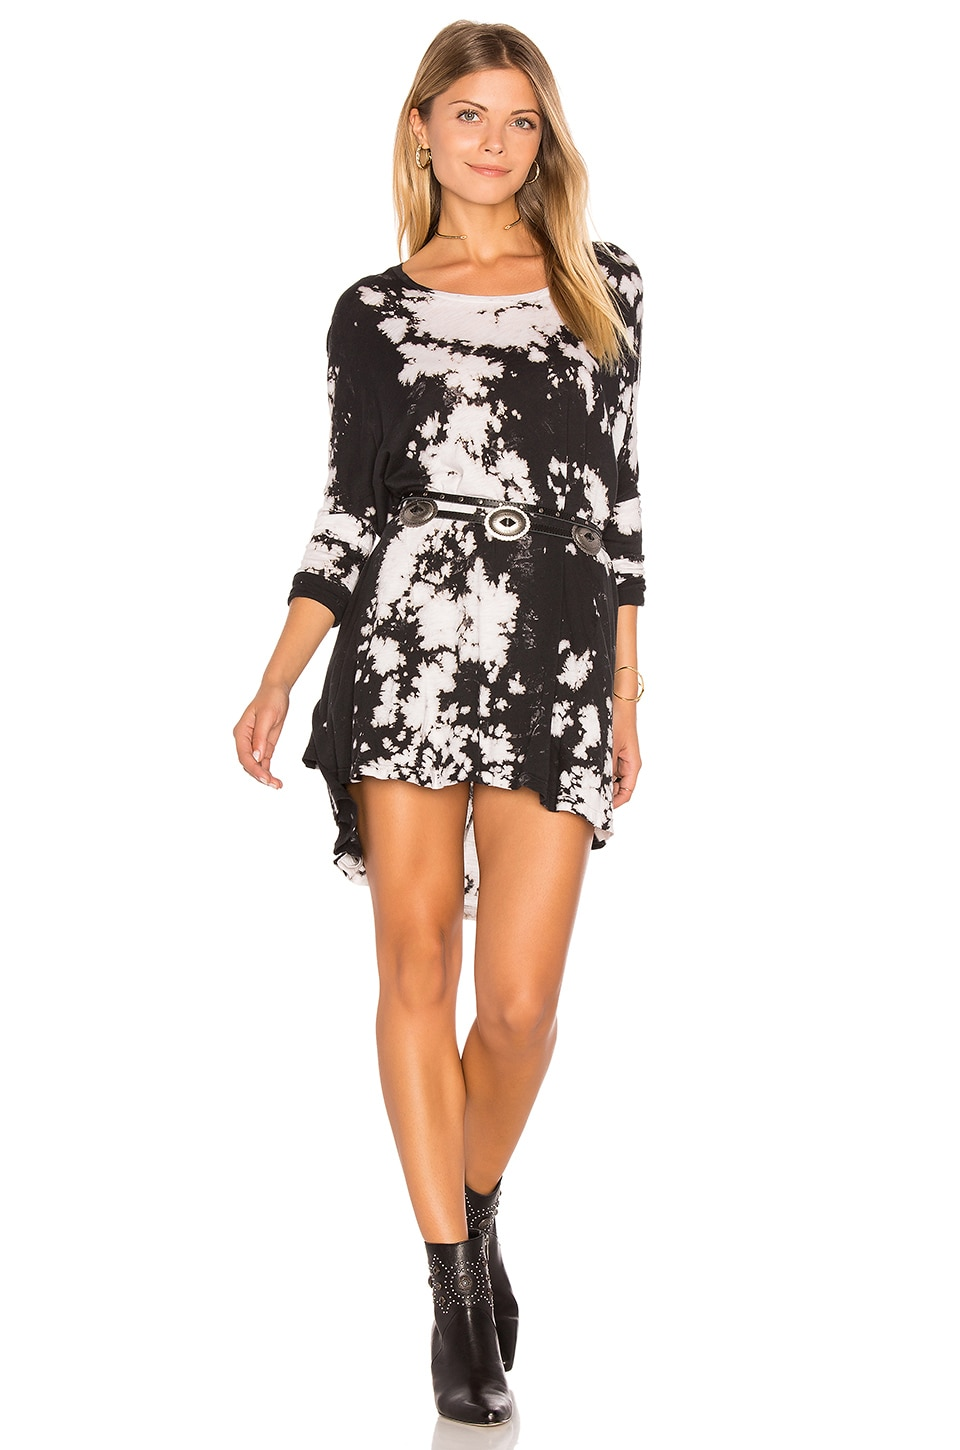 Will Tunic by Show Me Your Mumu